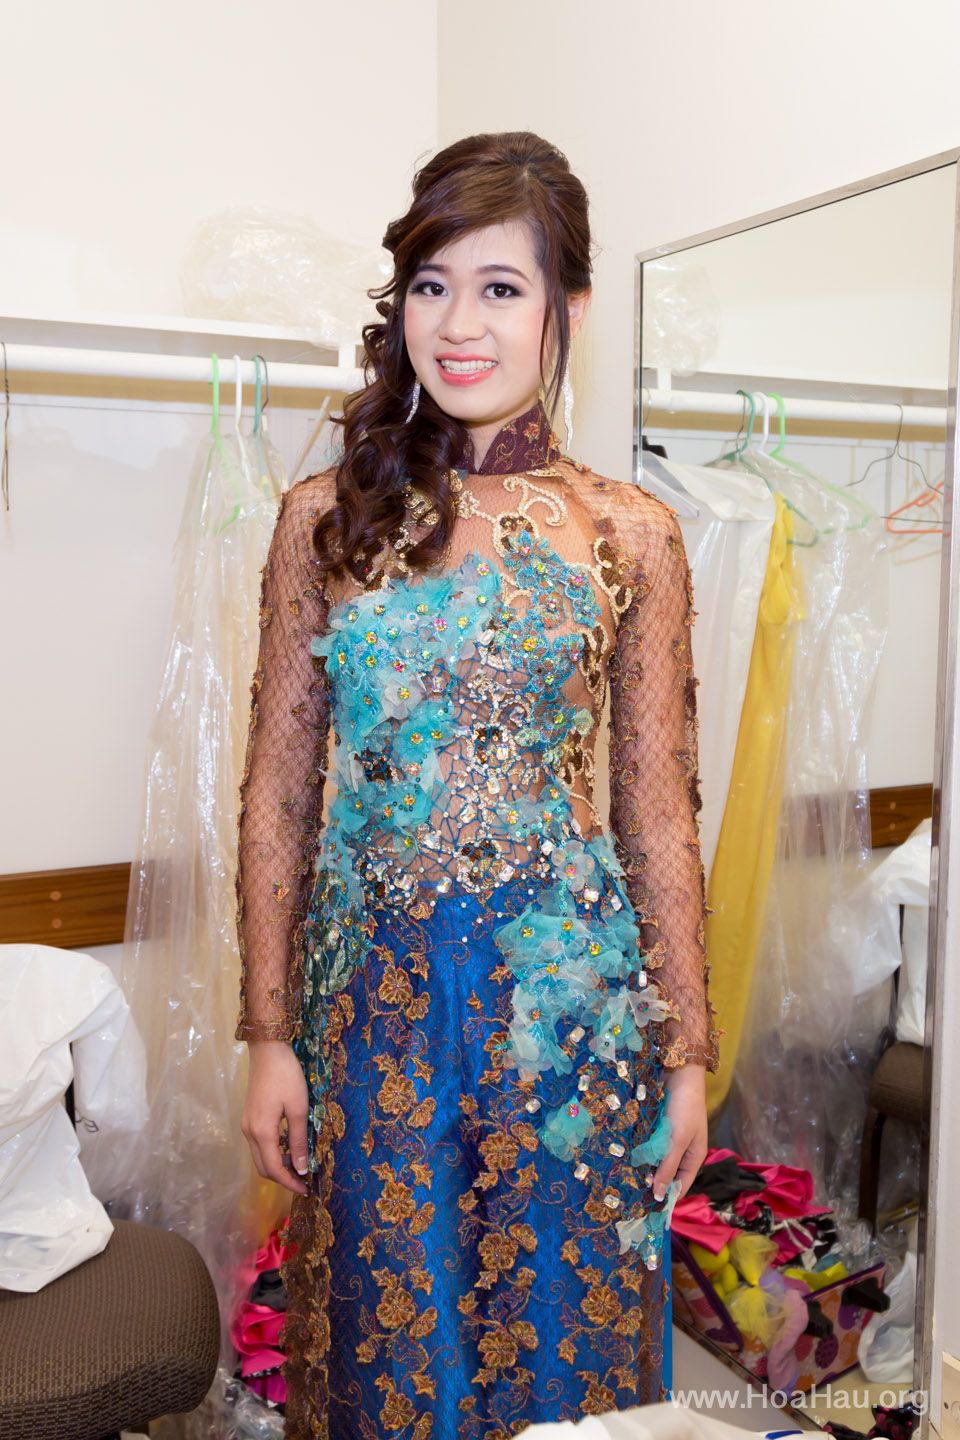 Miss Vietnam of Northern California 2014 - Hoa Hau Ao Dai Bac Cali 2014 - Behind the Scenes - Image 223